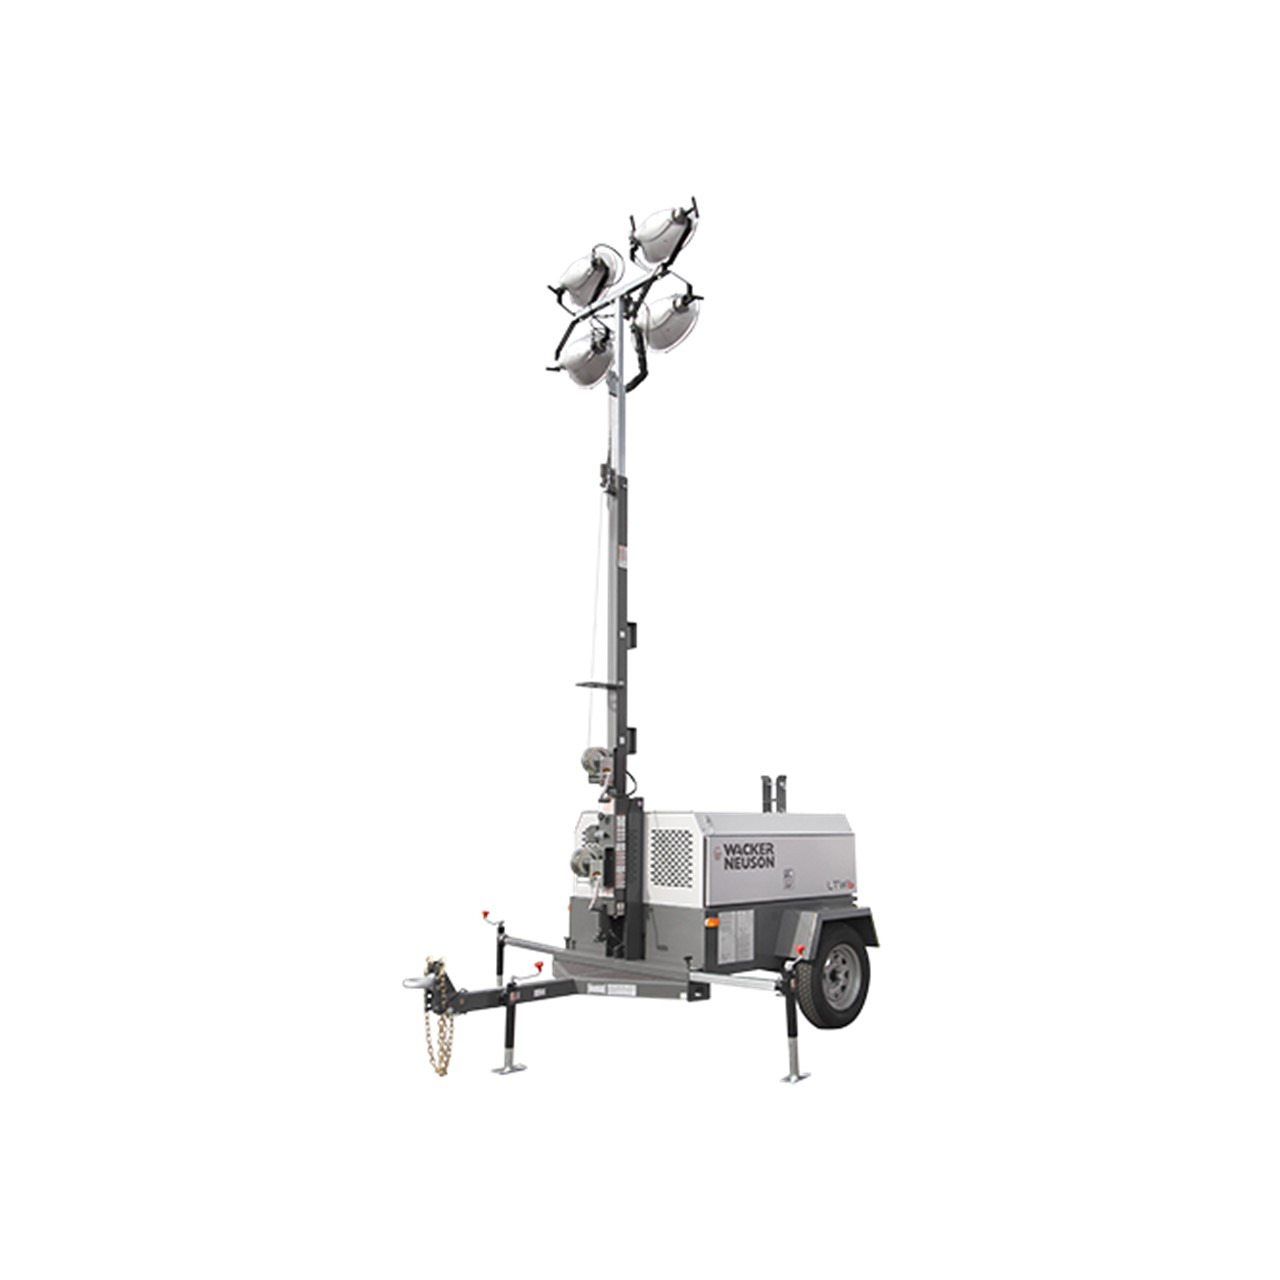 Wide Body, Vertical Mast Trailer Lighting Towers